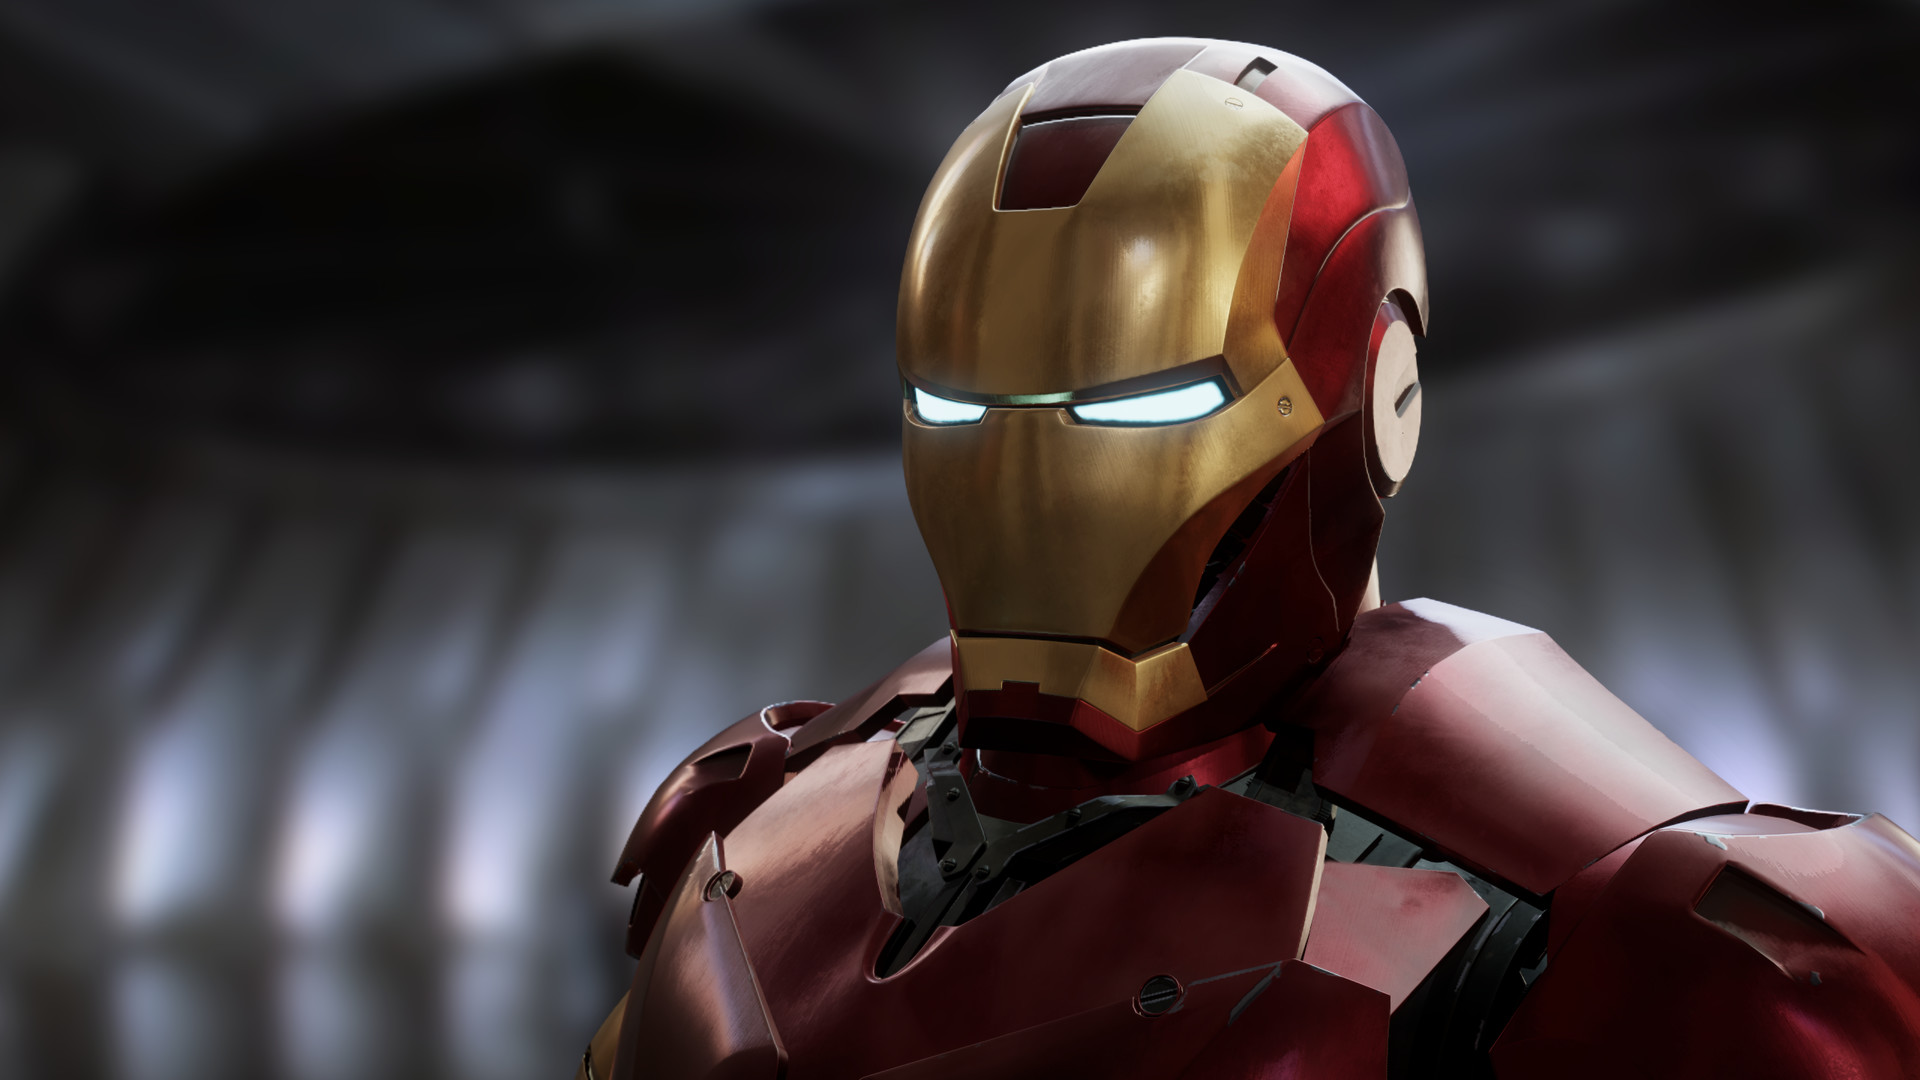 Iron Man HD 2019, HD Superheroes, 4k Wallpapers, Images, Backgrounds, Photos and Pictures